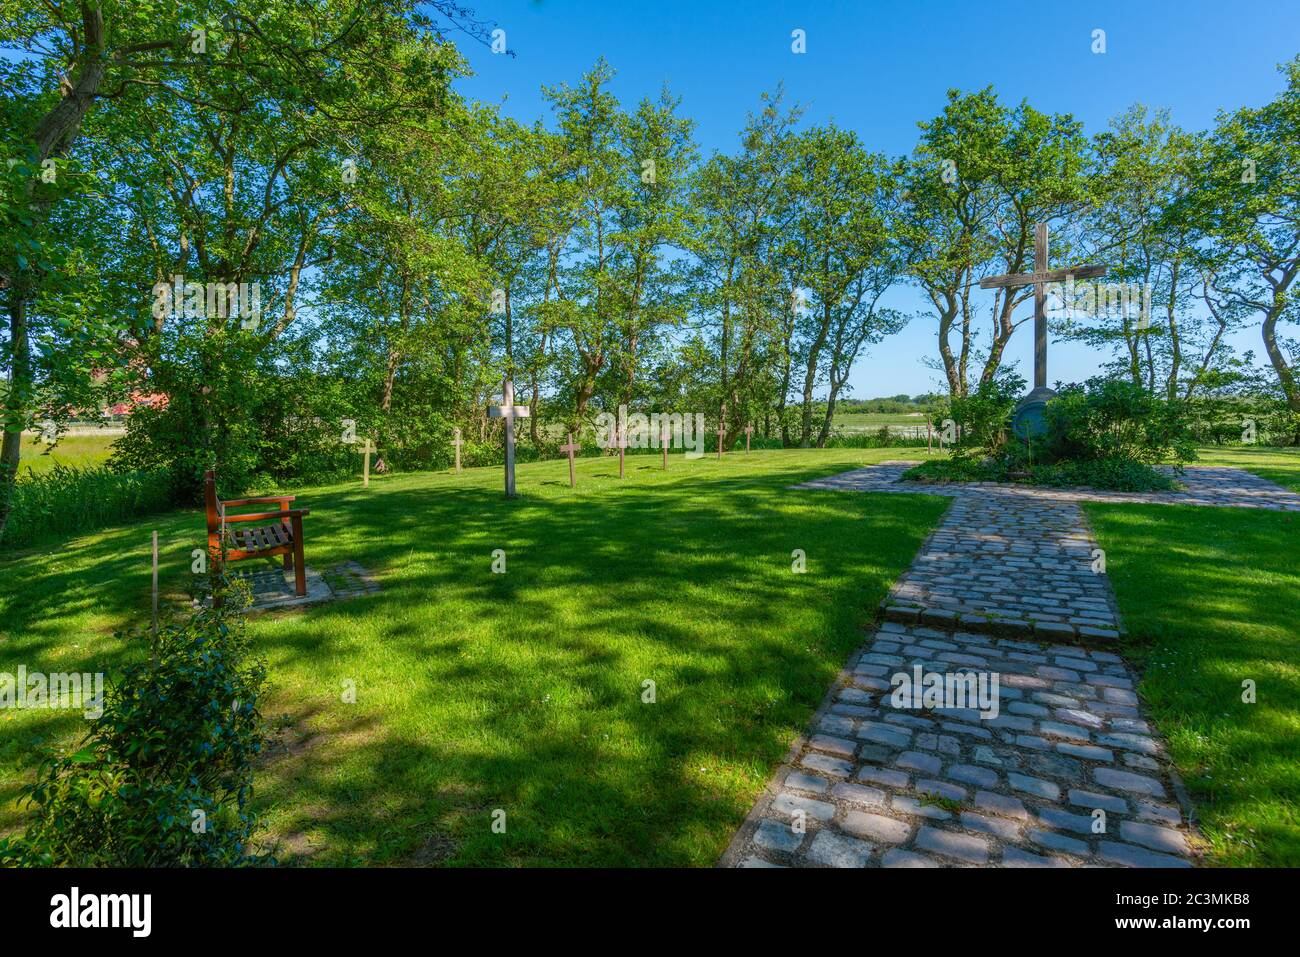 Cemetery for the Nameless drowned persons, North Sea island of Neuwerk, Federal State Hamburg, North Germany, Europe, UNESCO World heritage, Stock Photo